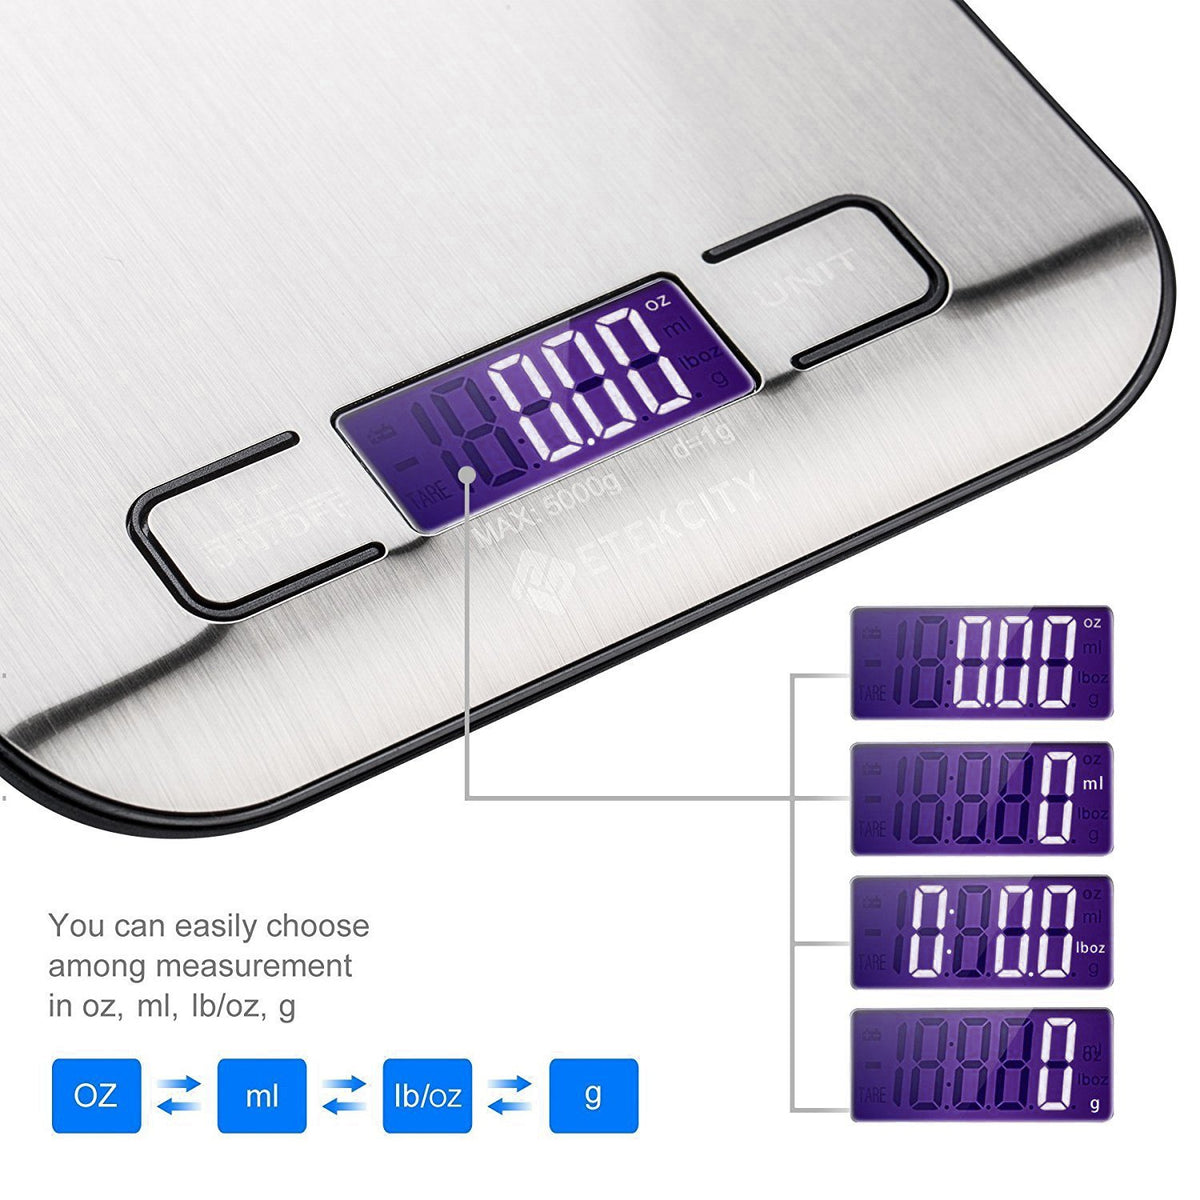 Etekcity-Digital-Kitchen-Scale-Multifunction-Food-Stainless-Steel